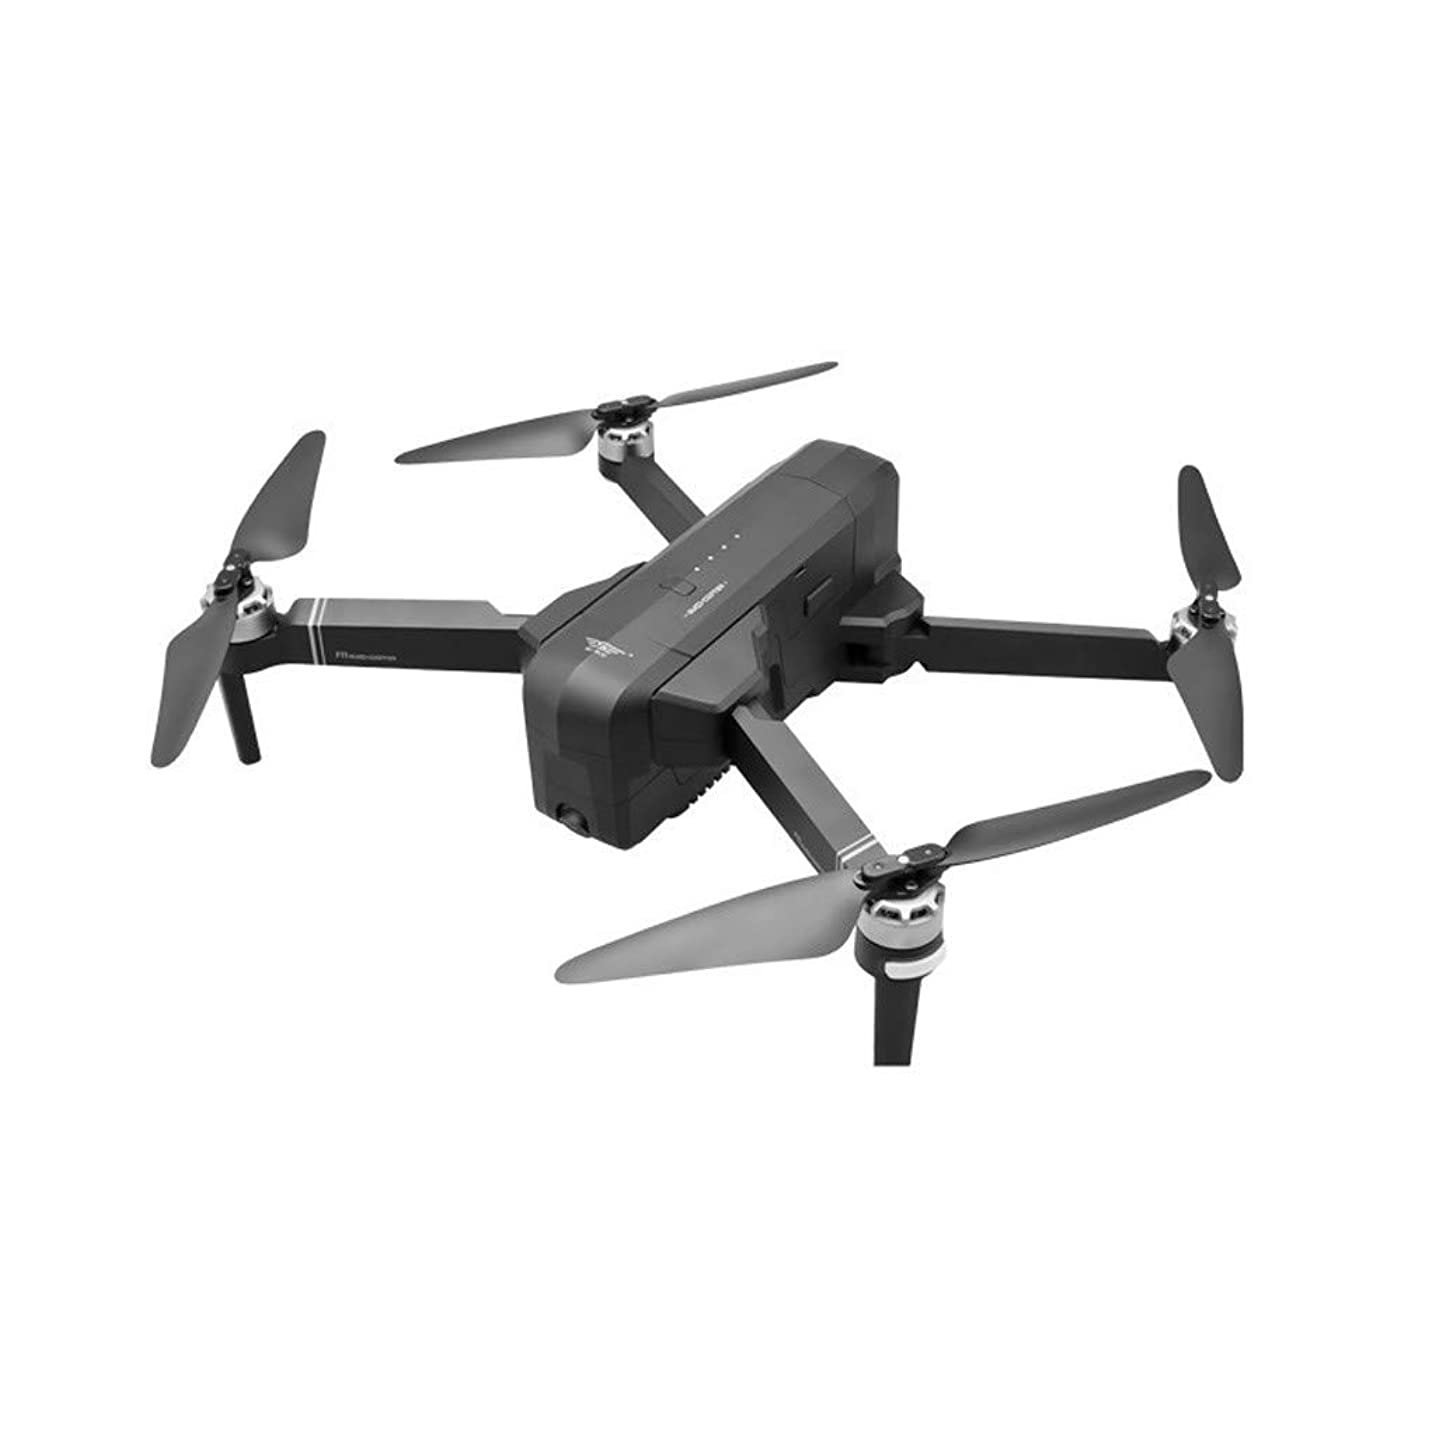 FD Izmn-electronic New SJRC F11 GPS 5G WiFi FPV 1080P HD Cam Foldable Brushless RC Drone Quadcopter